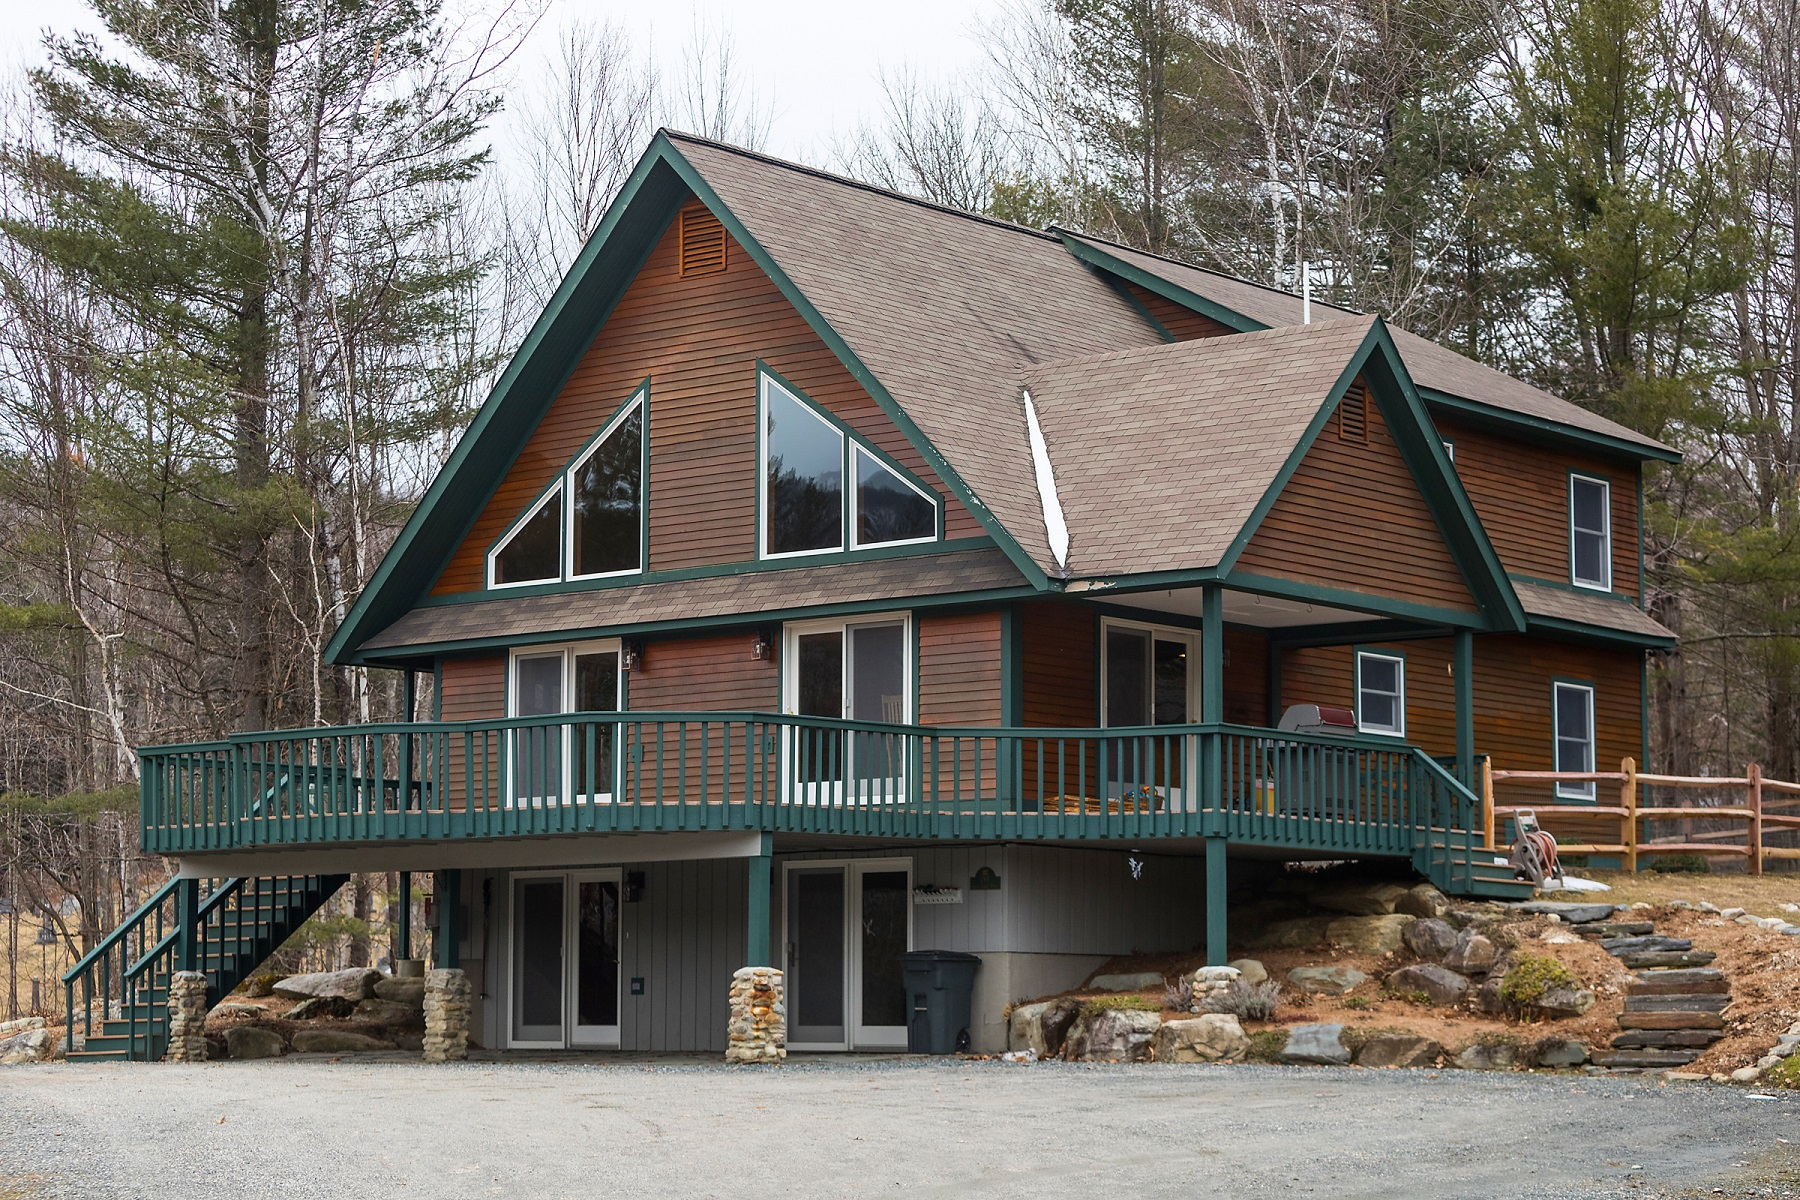 Single Family Home for Sale at Immaculately Maintained Home 194 Gold Coast Road Bridgewater, Vermont 05035 United States